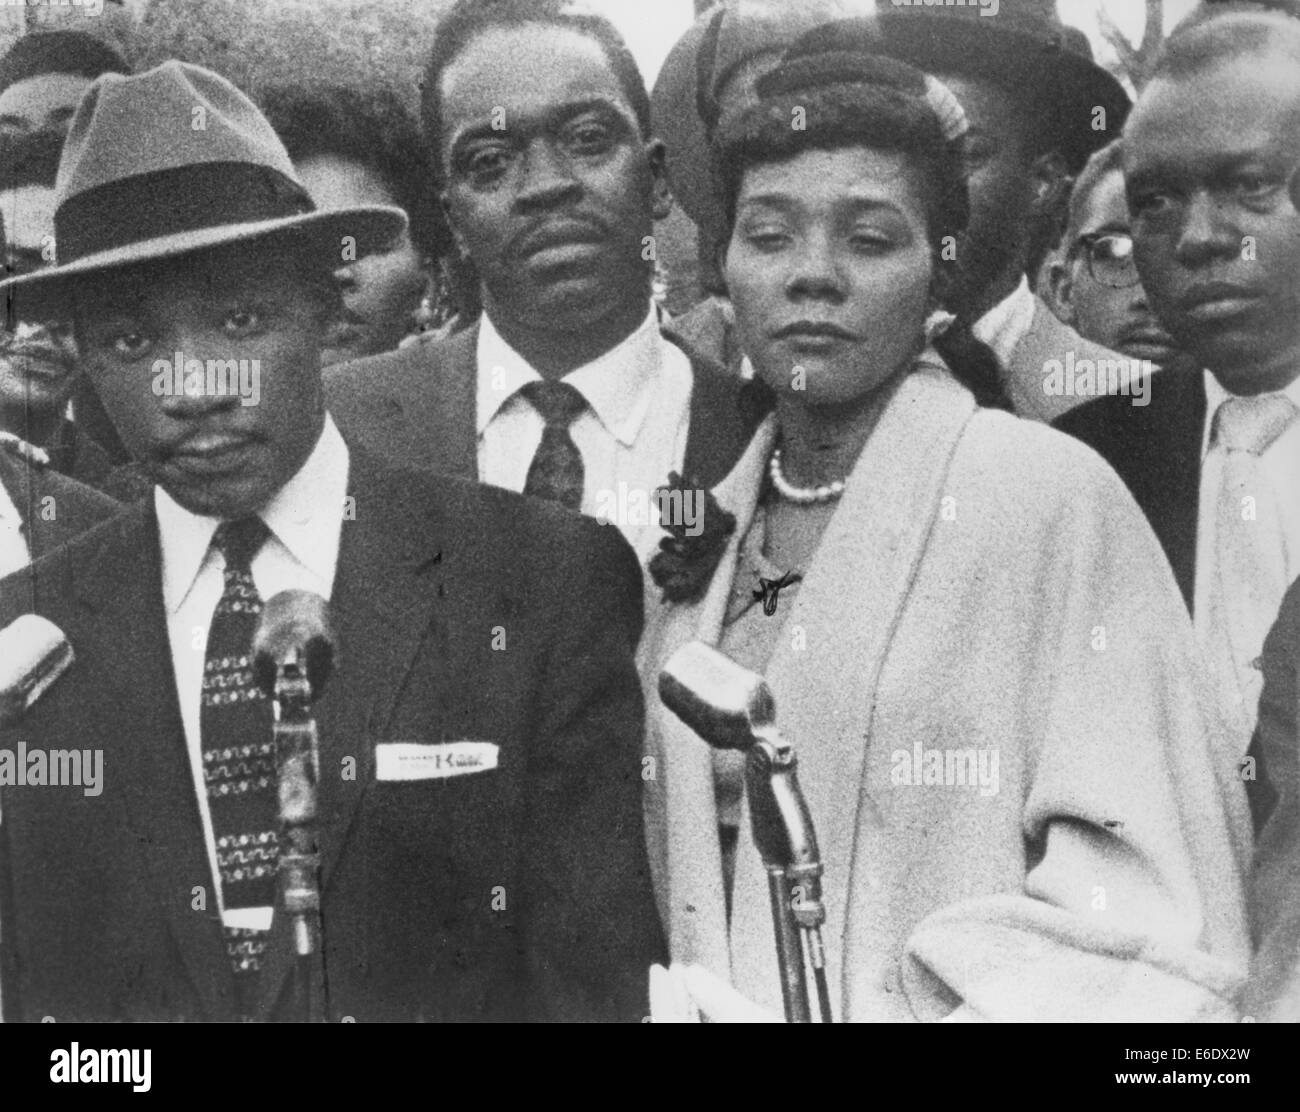 Martin Luther King, Jr. with Wife, Coretta, During Bus Boycott, Montgomery, Alabama, USA, March 1956 - Stock Image